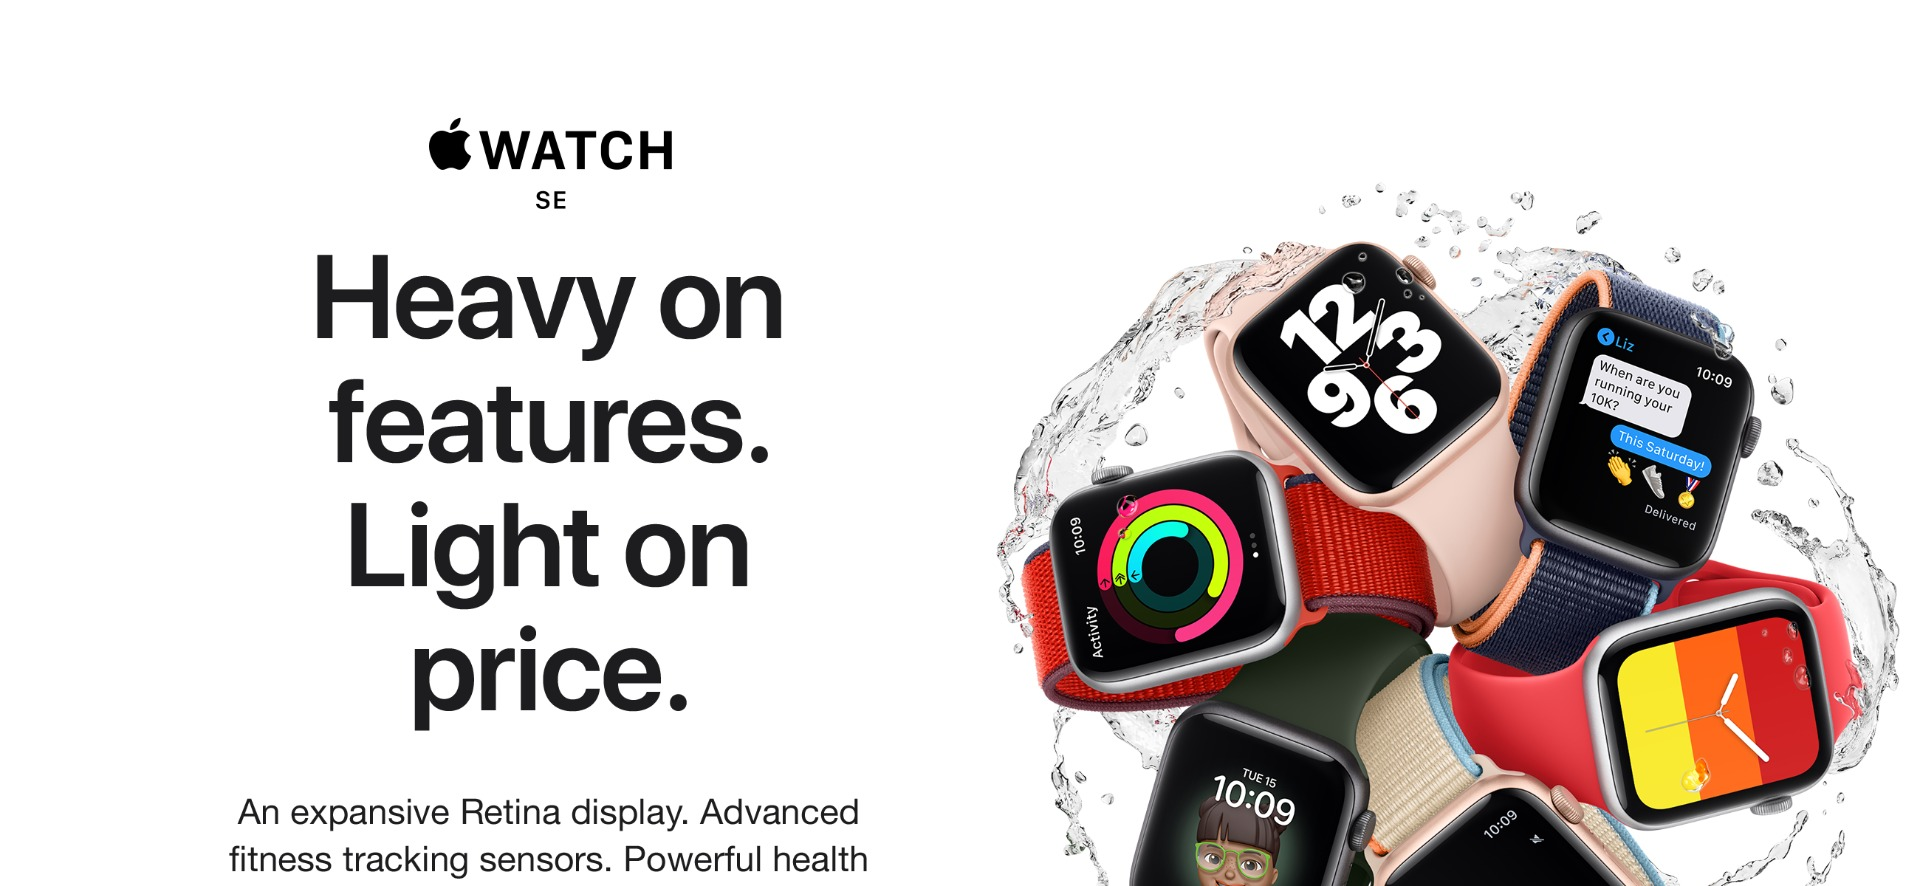 Apple Watch SE has the same larger-size Retina display as Series 6, so you can see even more at a glance. Advanced sensors to track all your fitness and workout goals. And powerful features to keep you healthy and safe. The Sleep app lets you set a bedtime routine and track your sleep. And with the optional cellular service, you can go without your phone.